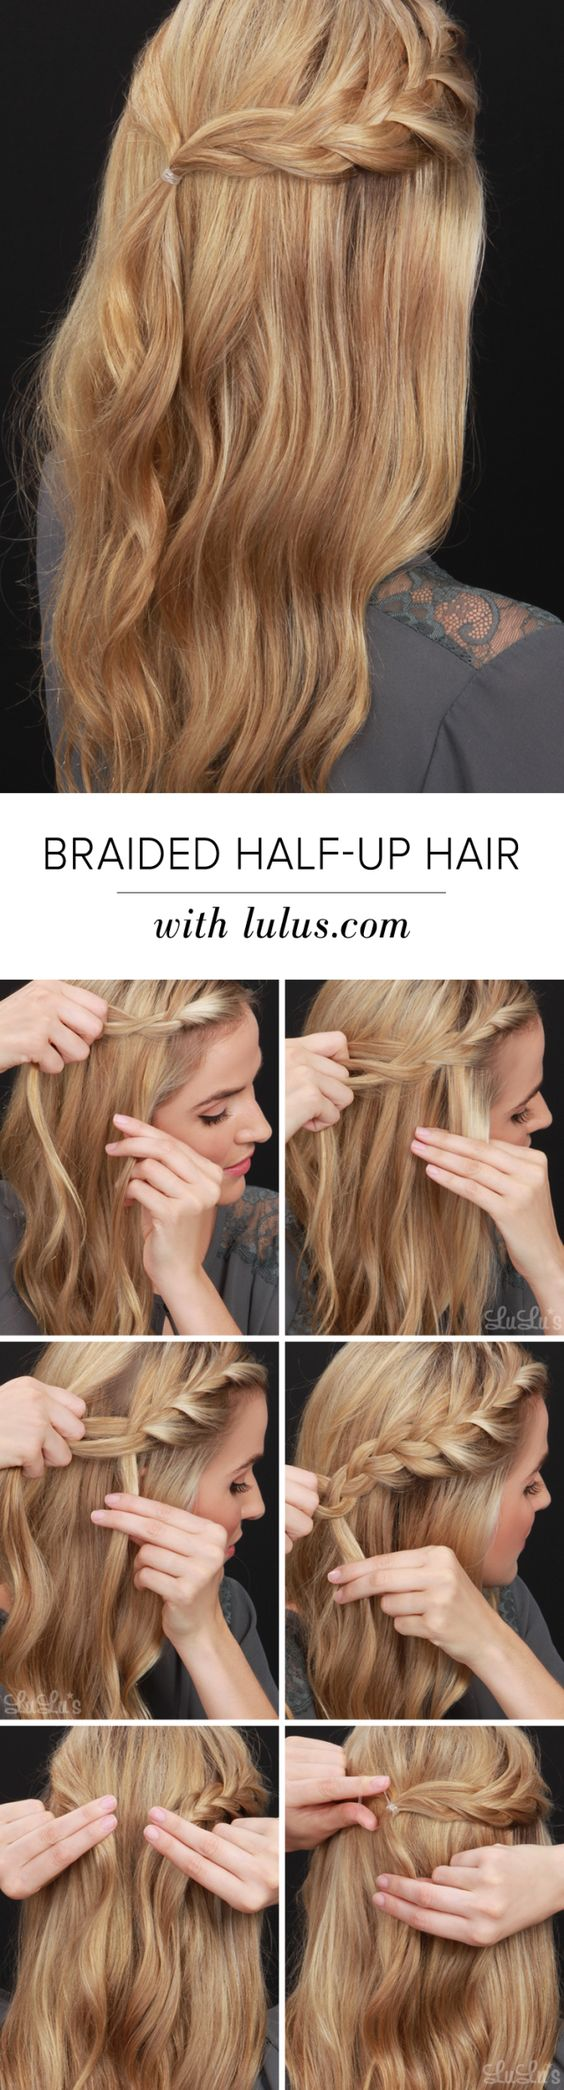 Great for a day at the office, date night, and every other occasion imaginable, our Half-Up Braided Hair Tutorial is so easy to achieve!: